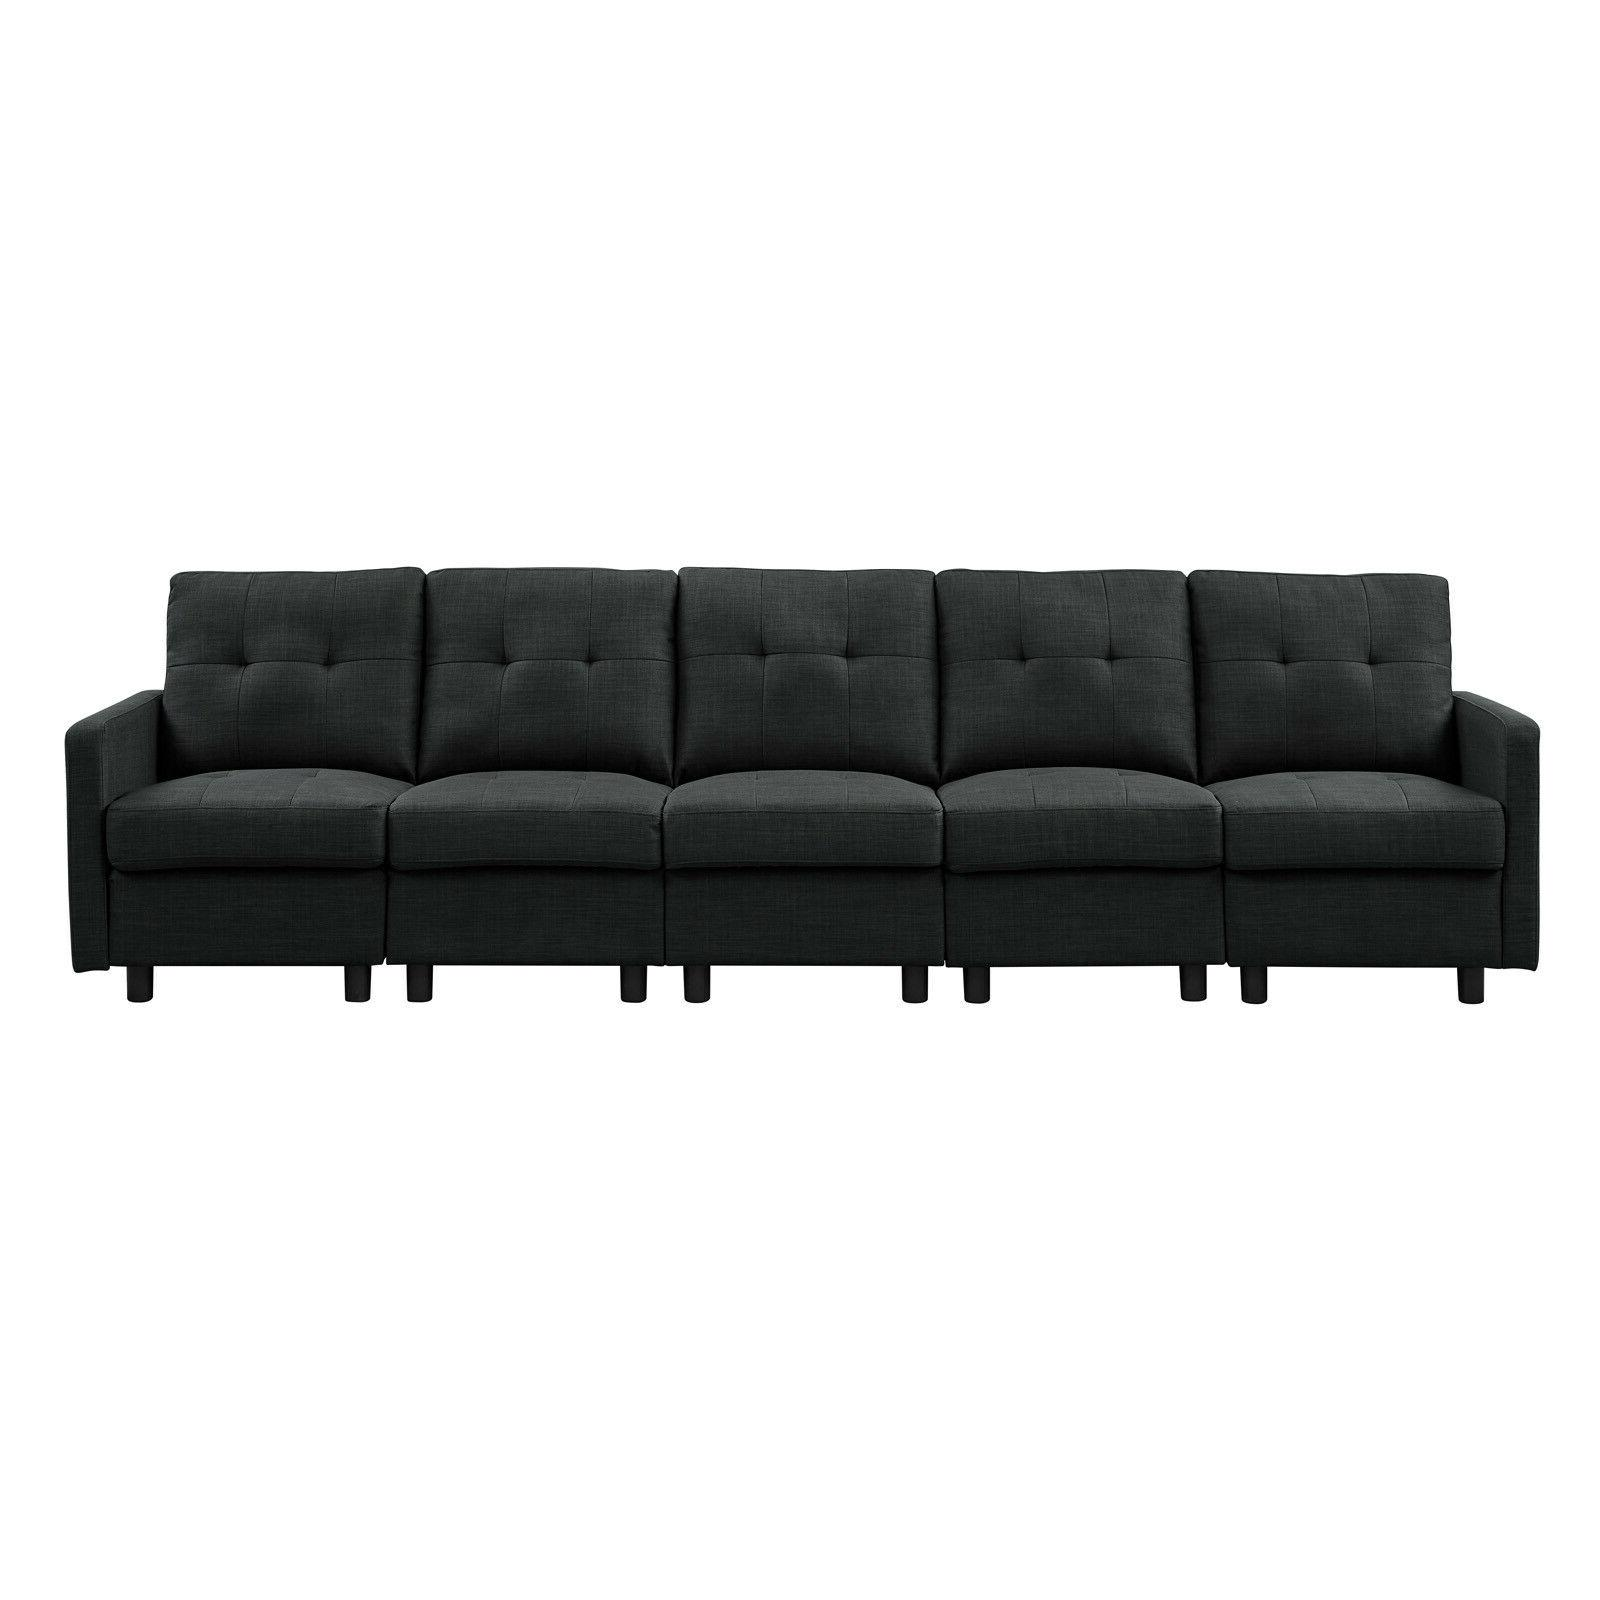 Sectional Linen Fabric Chaise L-Shaped Couch